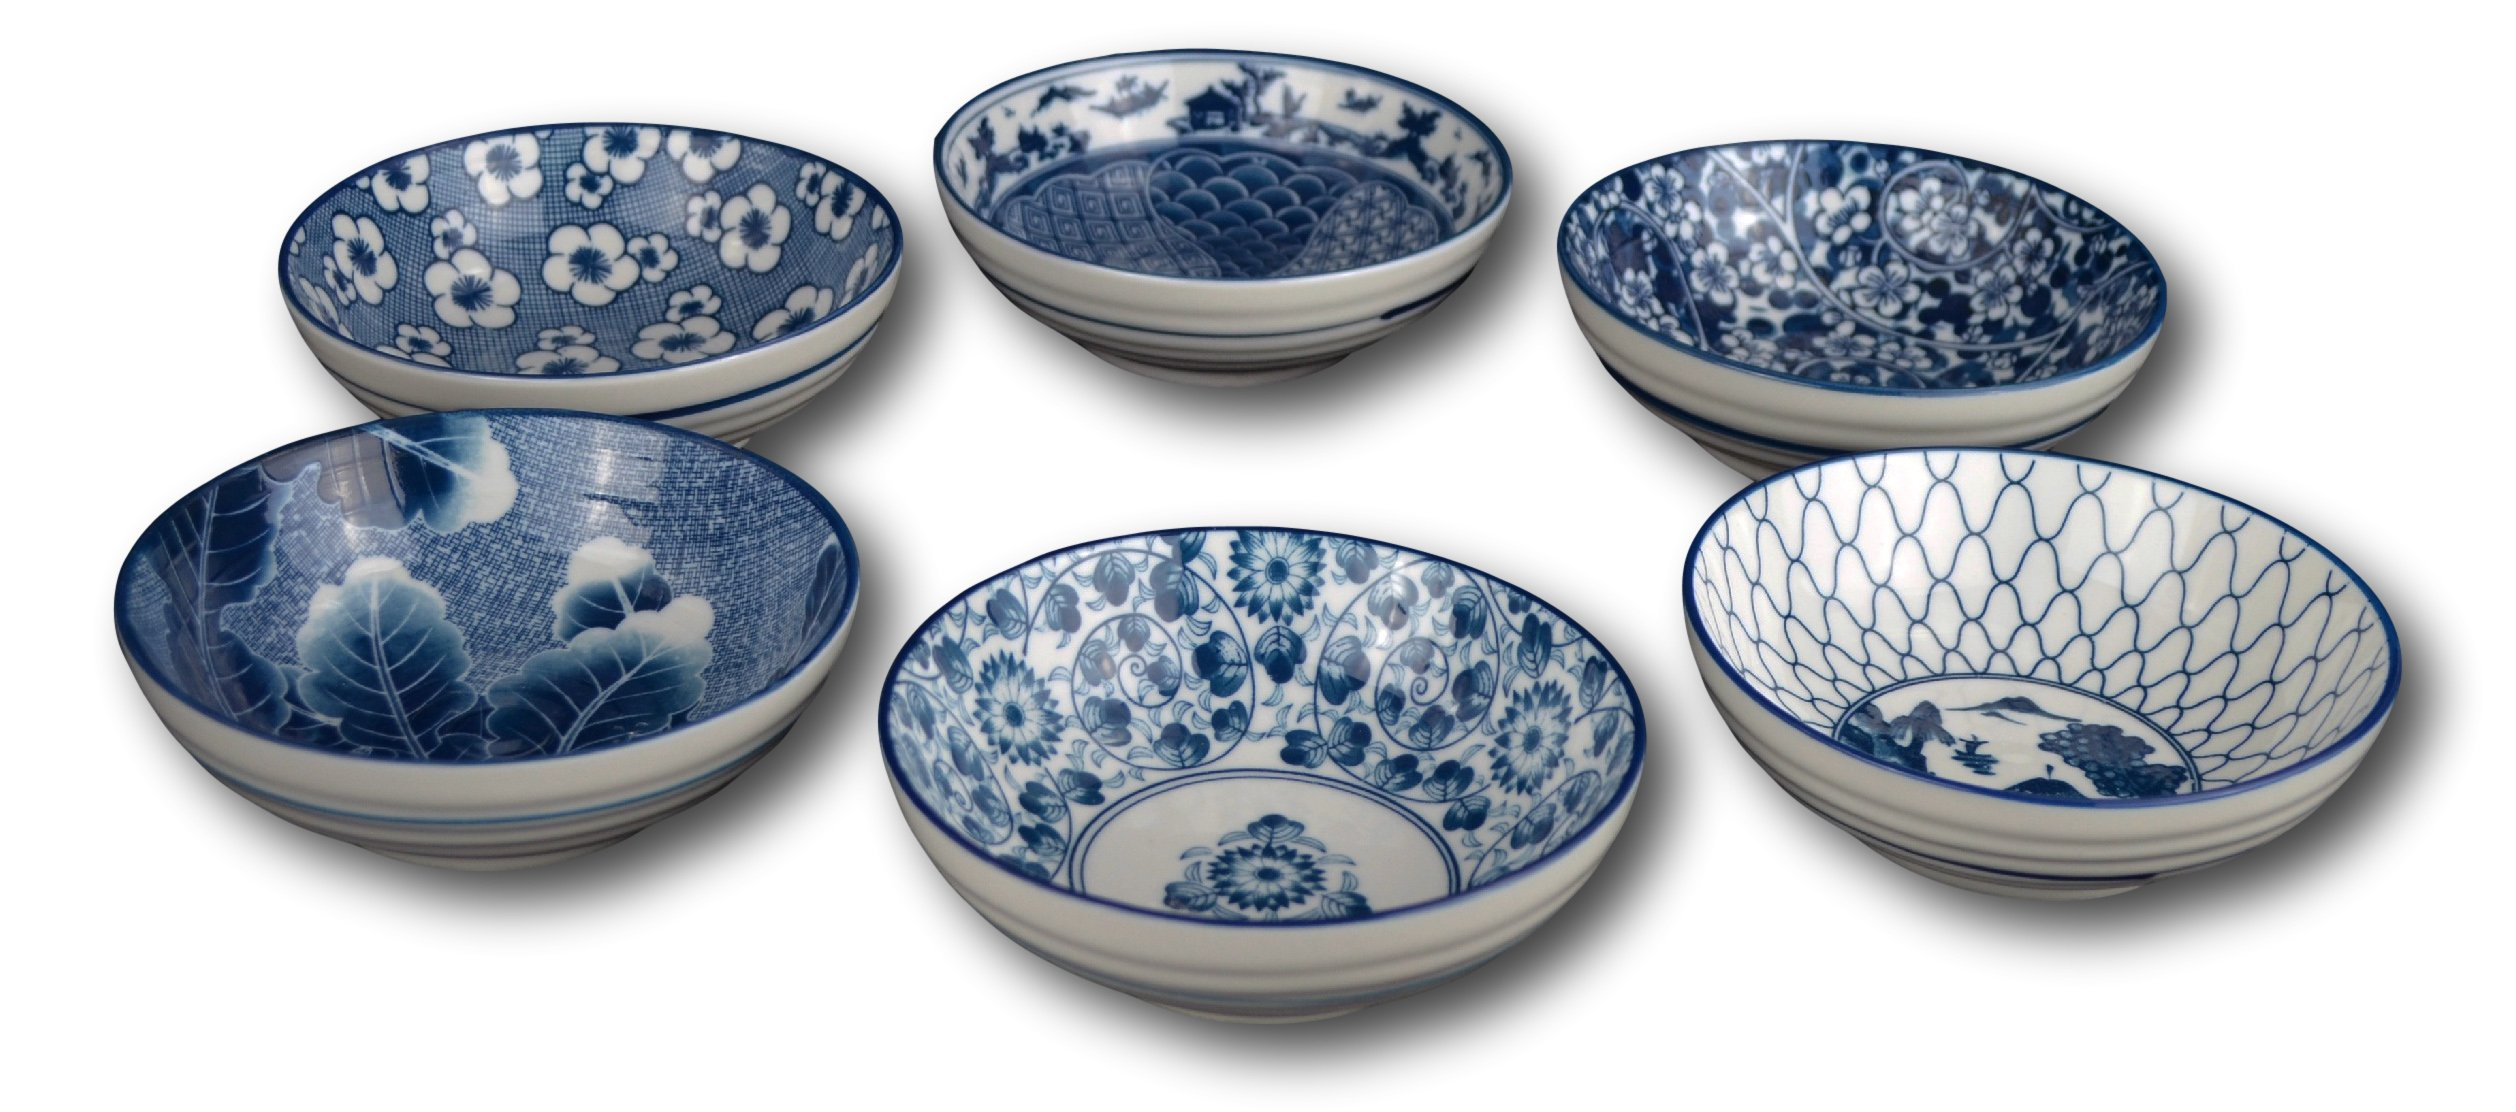 Porcelain Chinese Japanese Bowl Sets with Free 6 Porcelain Spoons, Set of 6